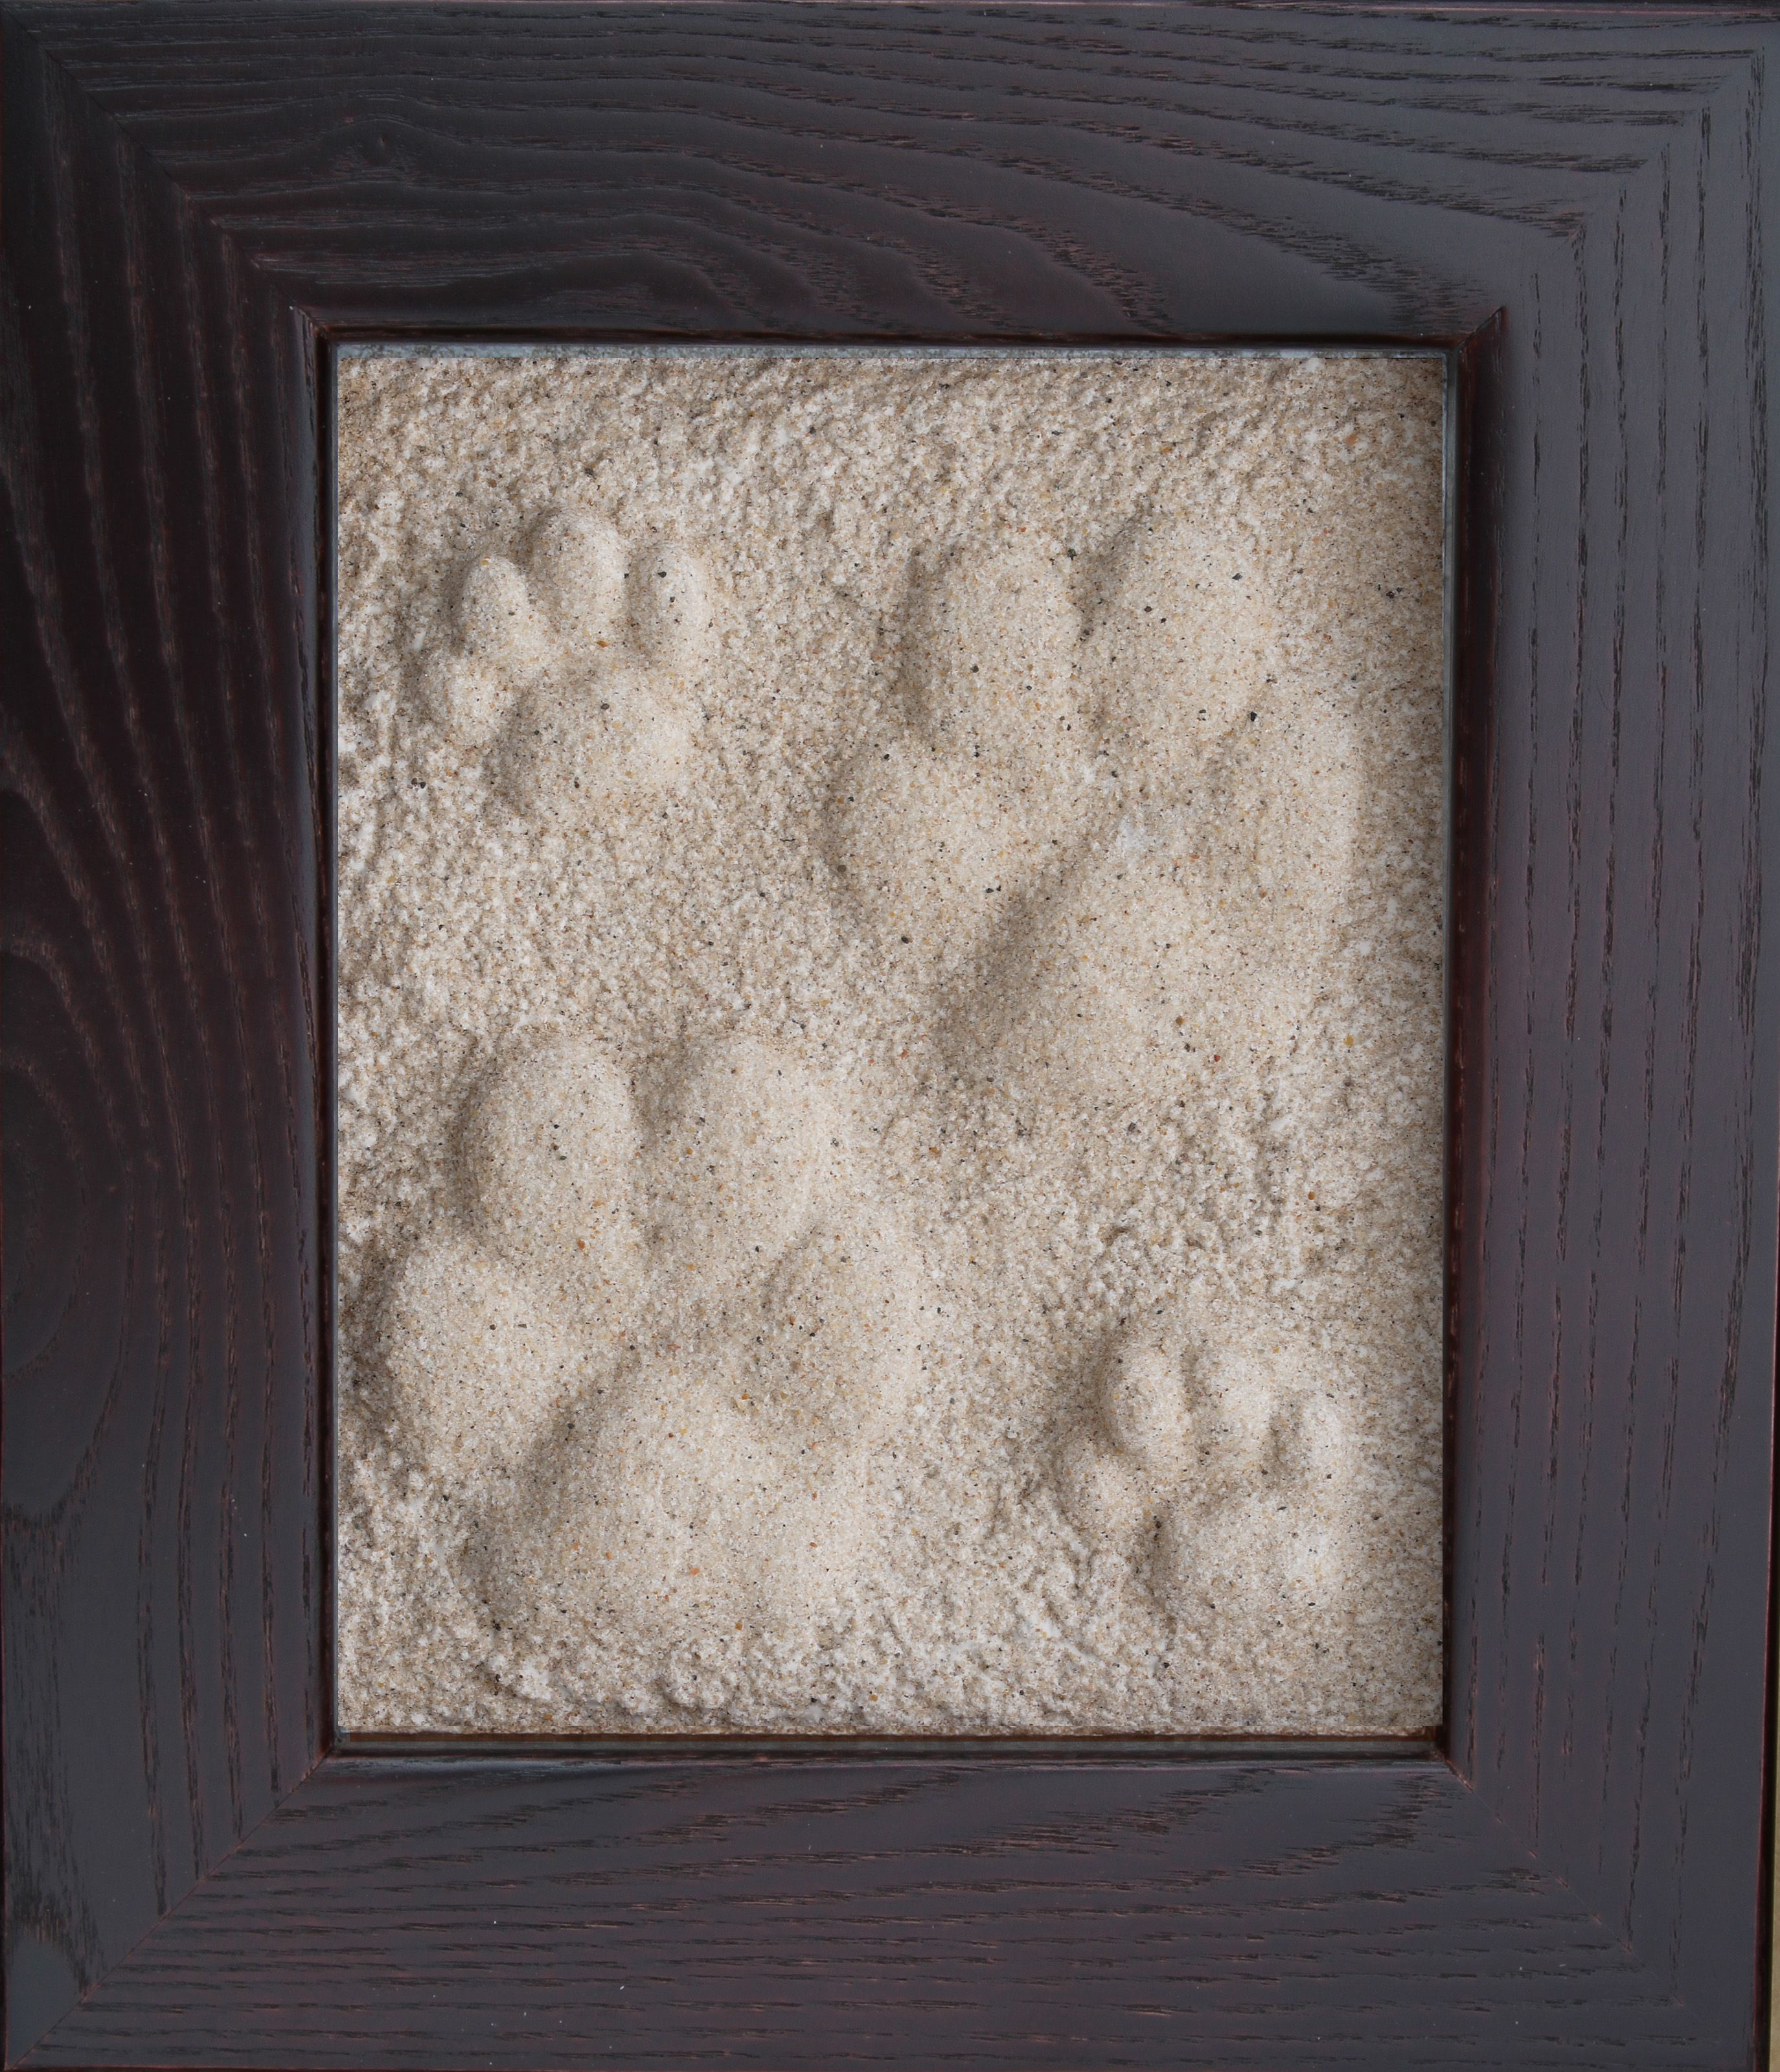 how to make a paw print of your dog